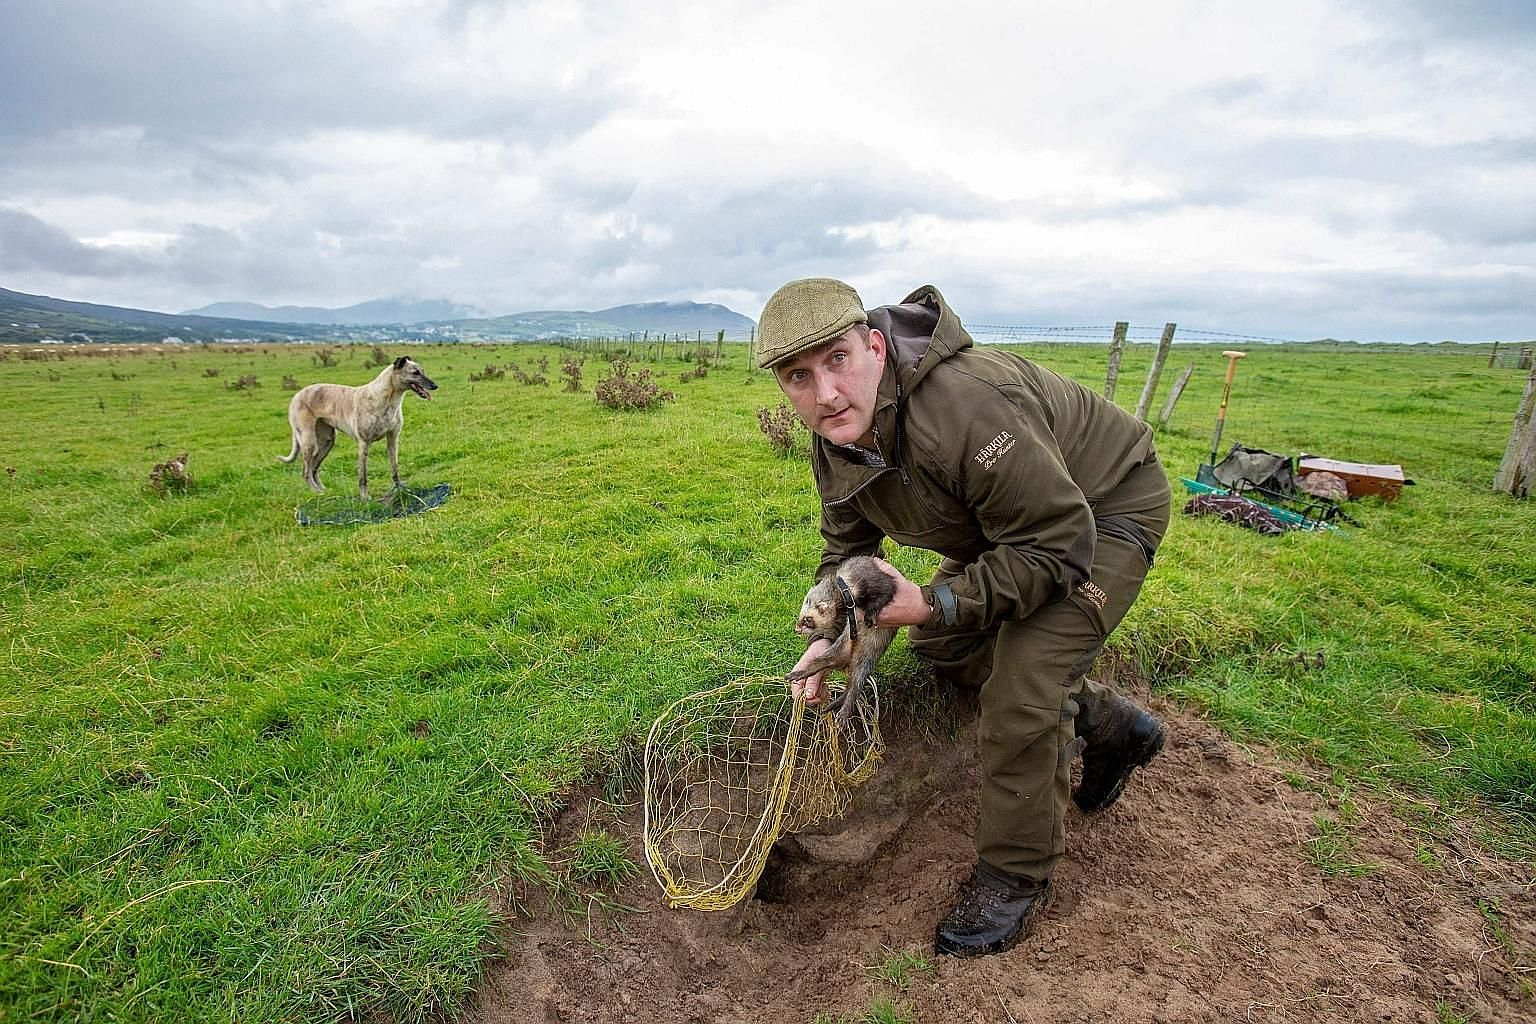 Professional rabbit catcher Steven McGonigal, holding a ferret and, with his dog Fudge, sets a net as he hunts for rabbits in County Donegal, north-west Ireland. He prefers using ferrets, dogs, spades and nets over modern guns and poison.